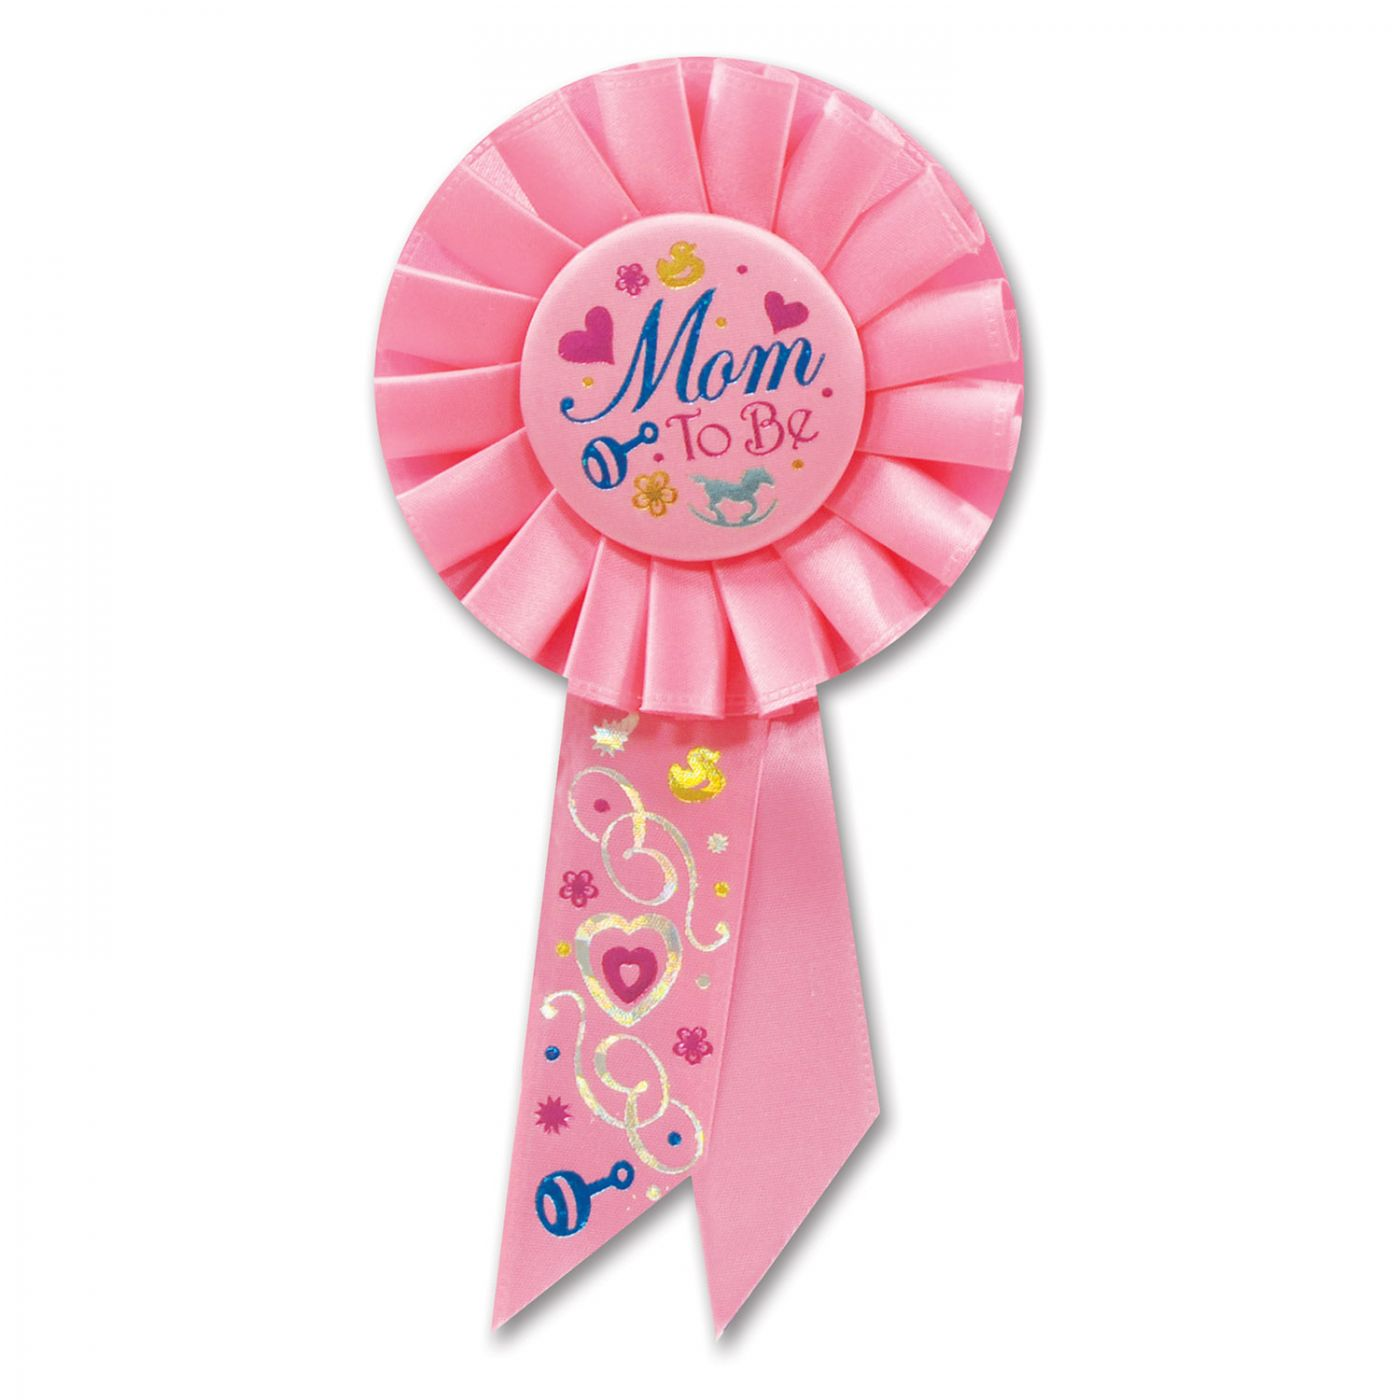 Mom To Be Rosette (6) image